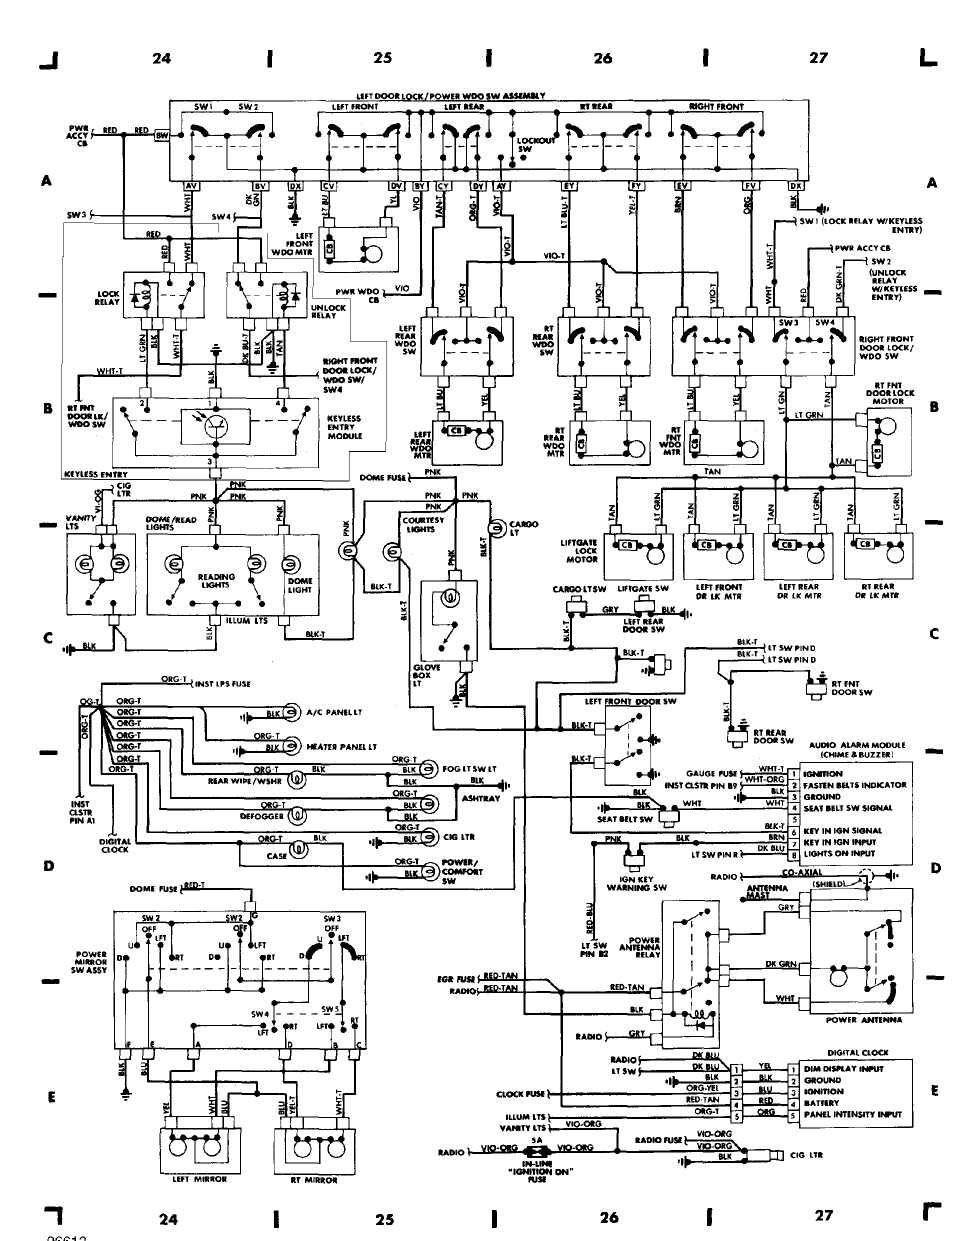 wiring_diagrams_html_61f5e0ad wiring diagrams 1984 1991 jeep cherokee (xj) jeep 2001 jeep cherokee wiring diagram at bakdesigns.co